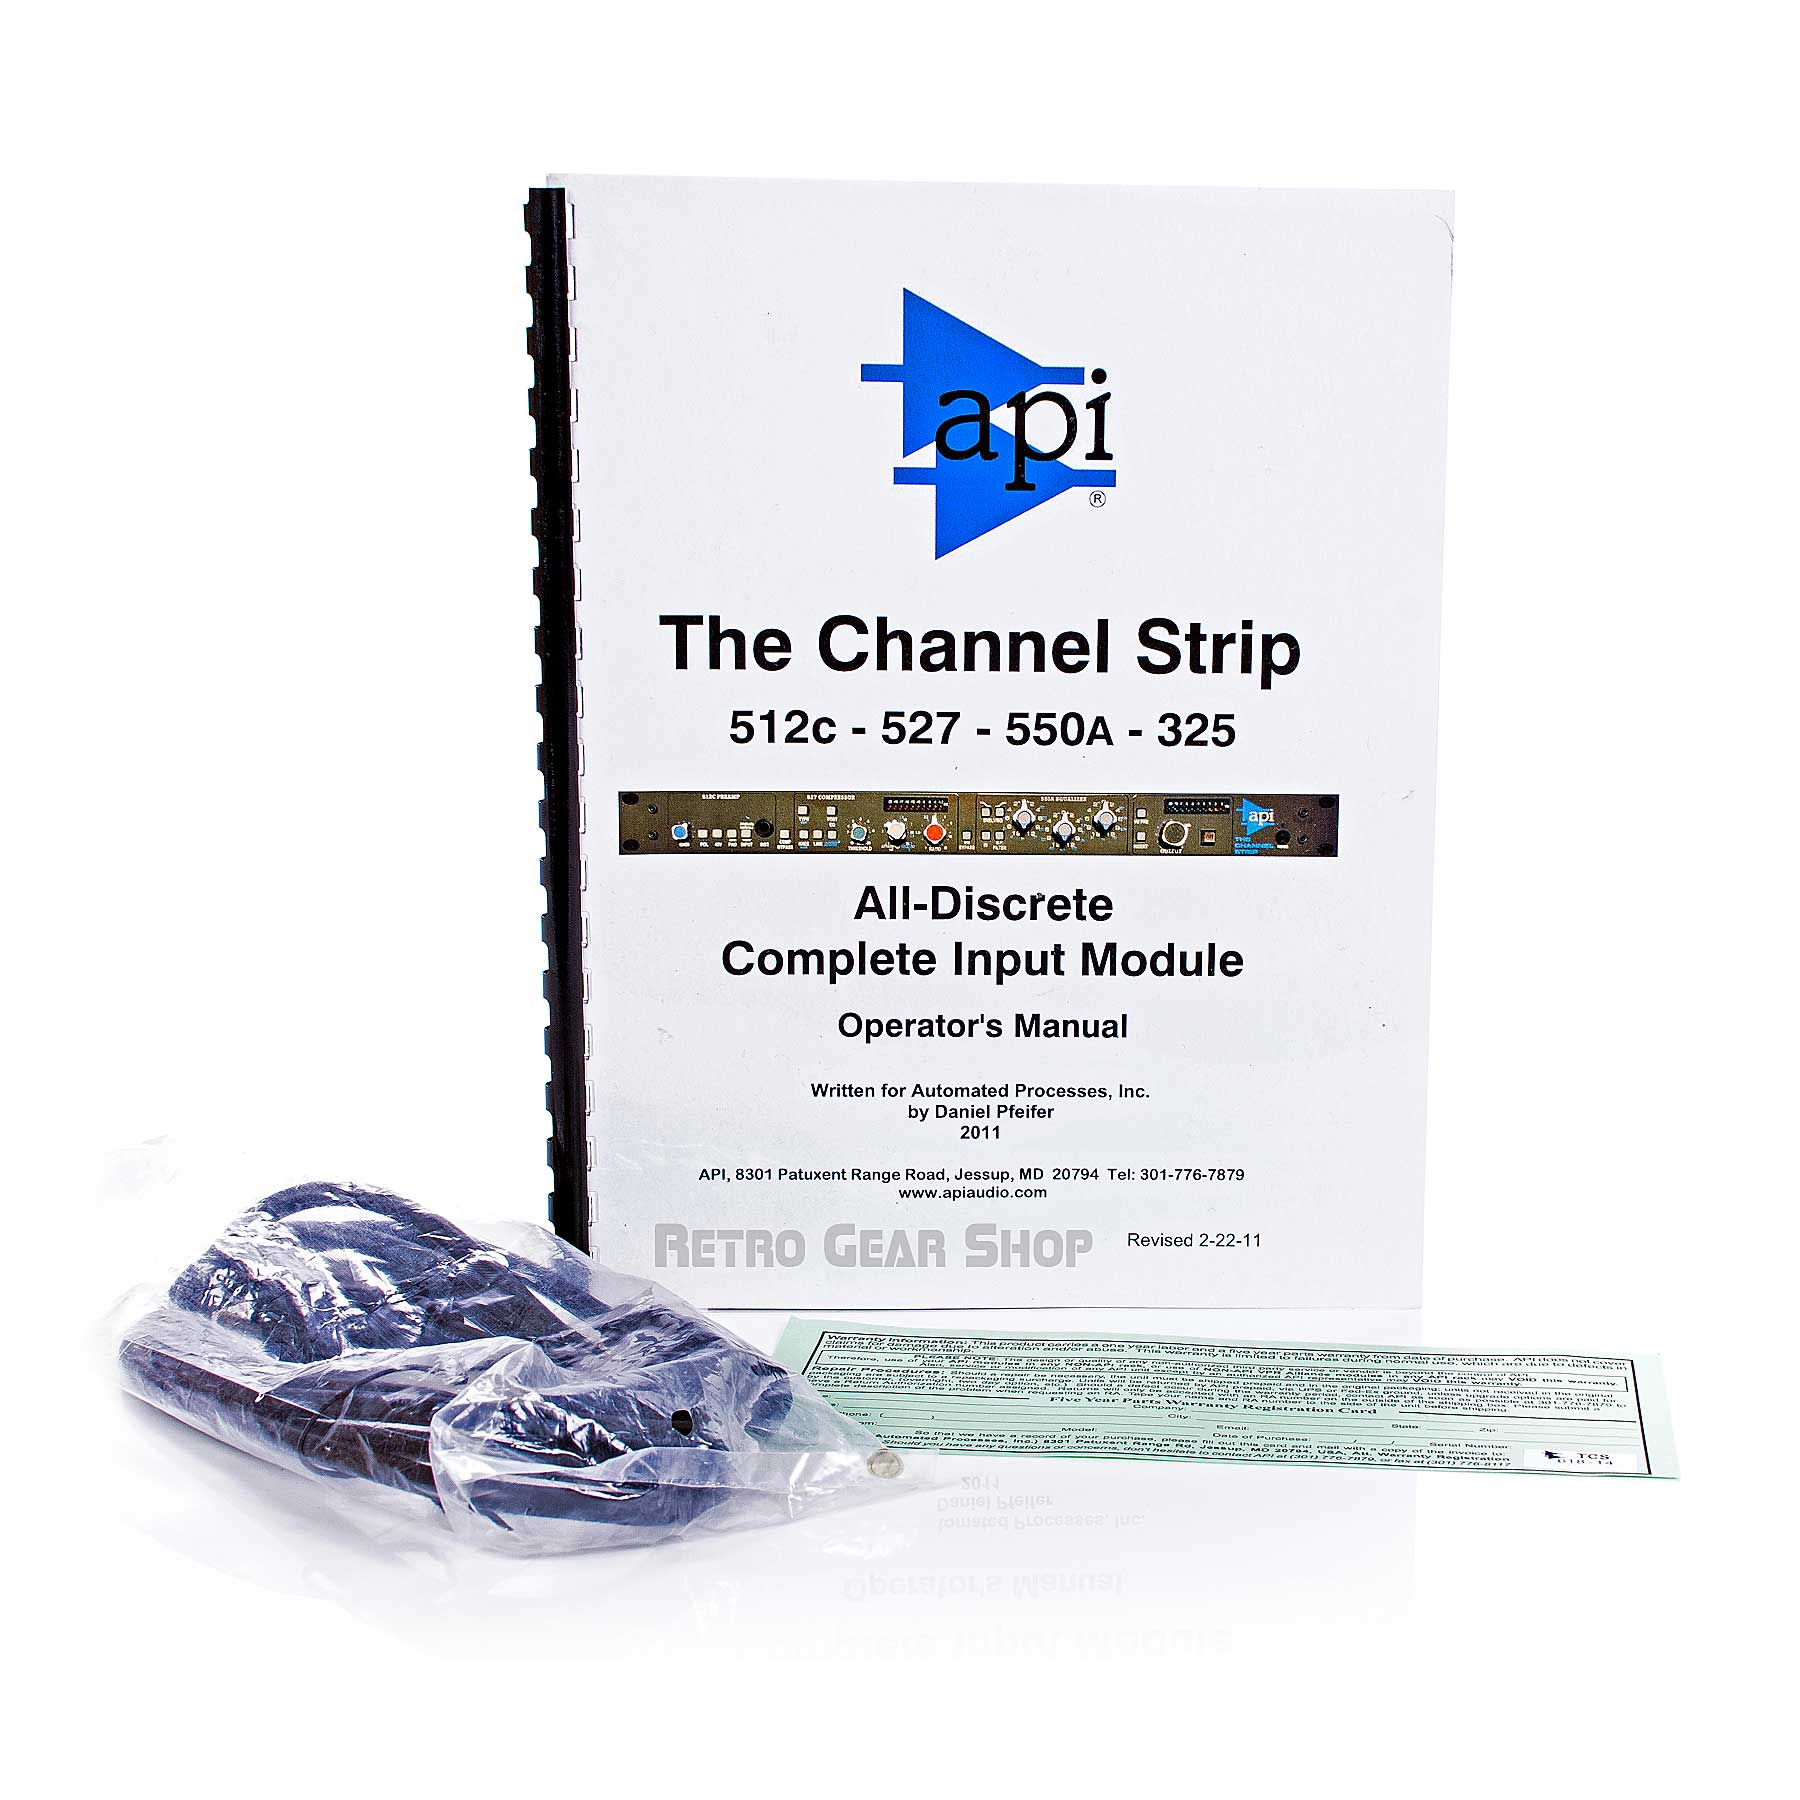 API The Channel Strip Manual Power Cable